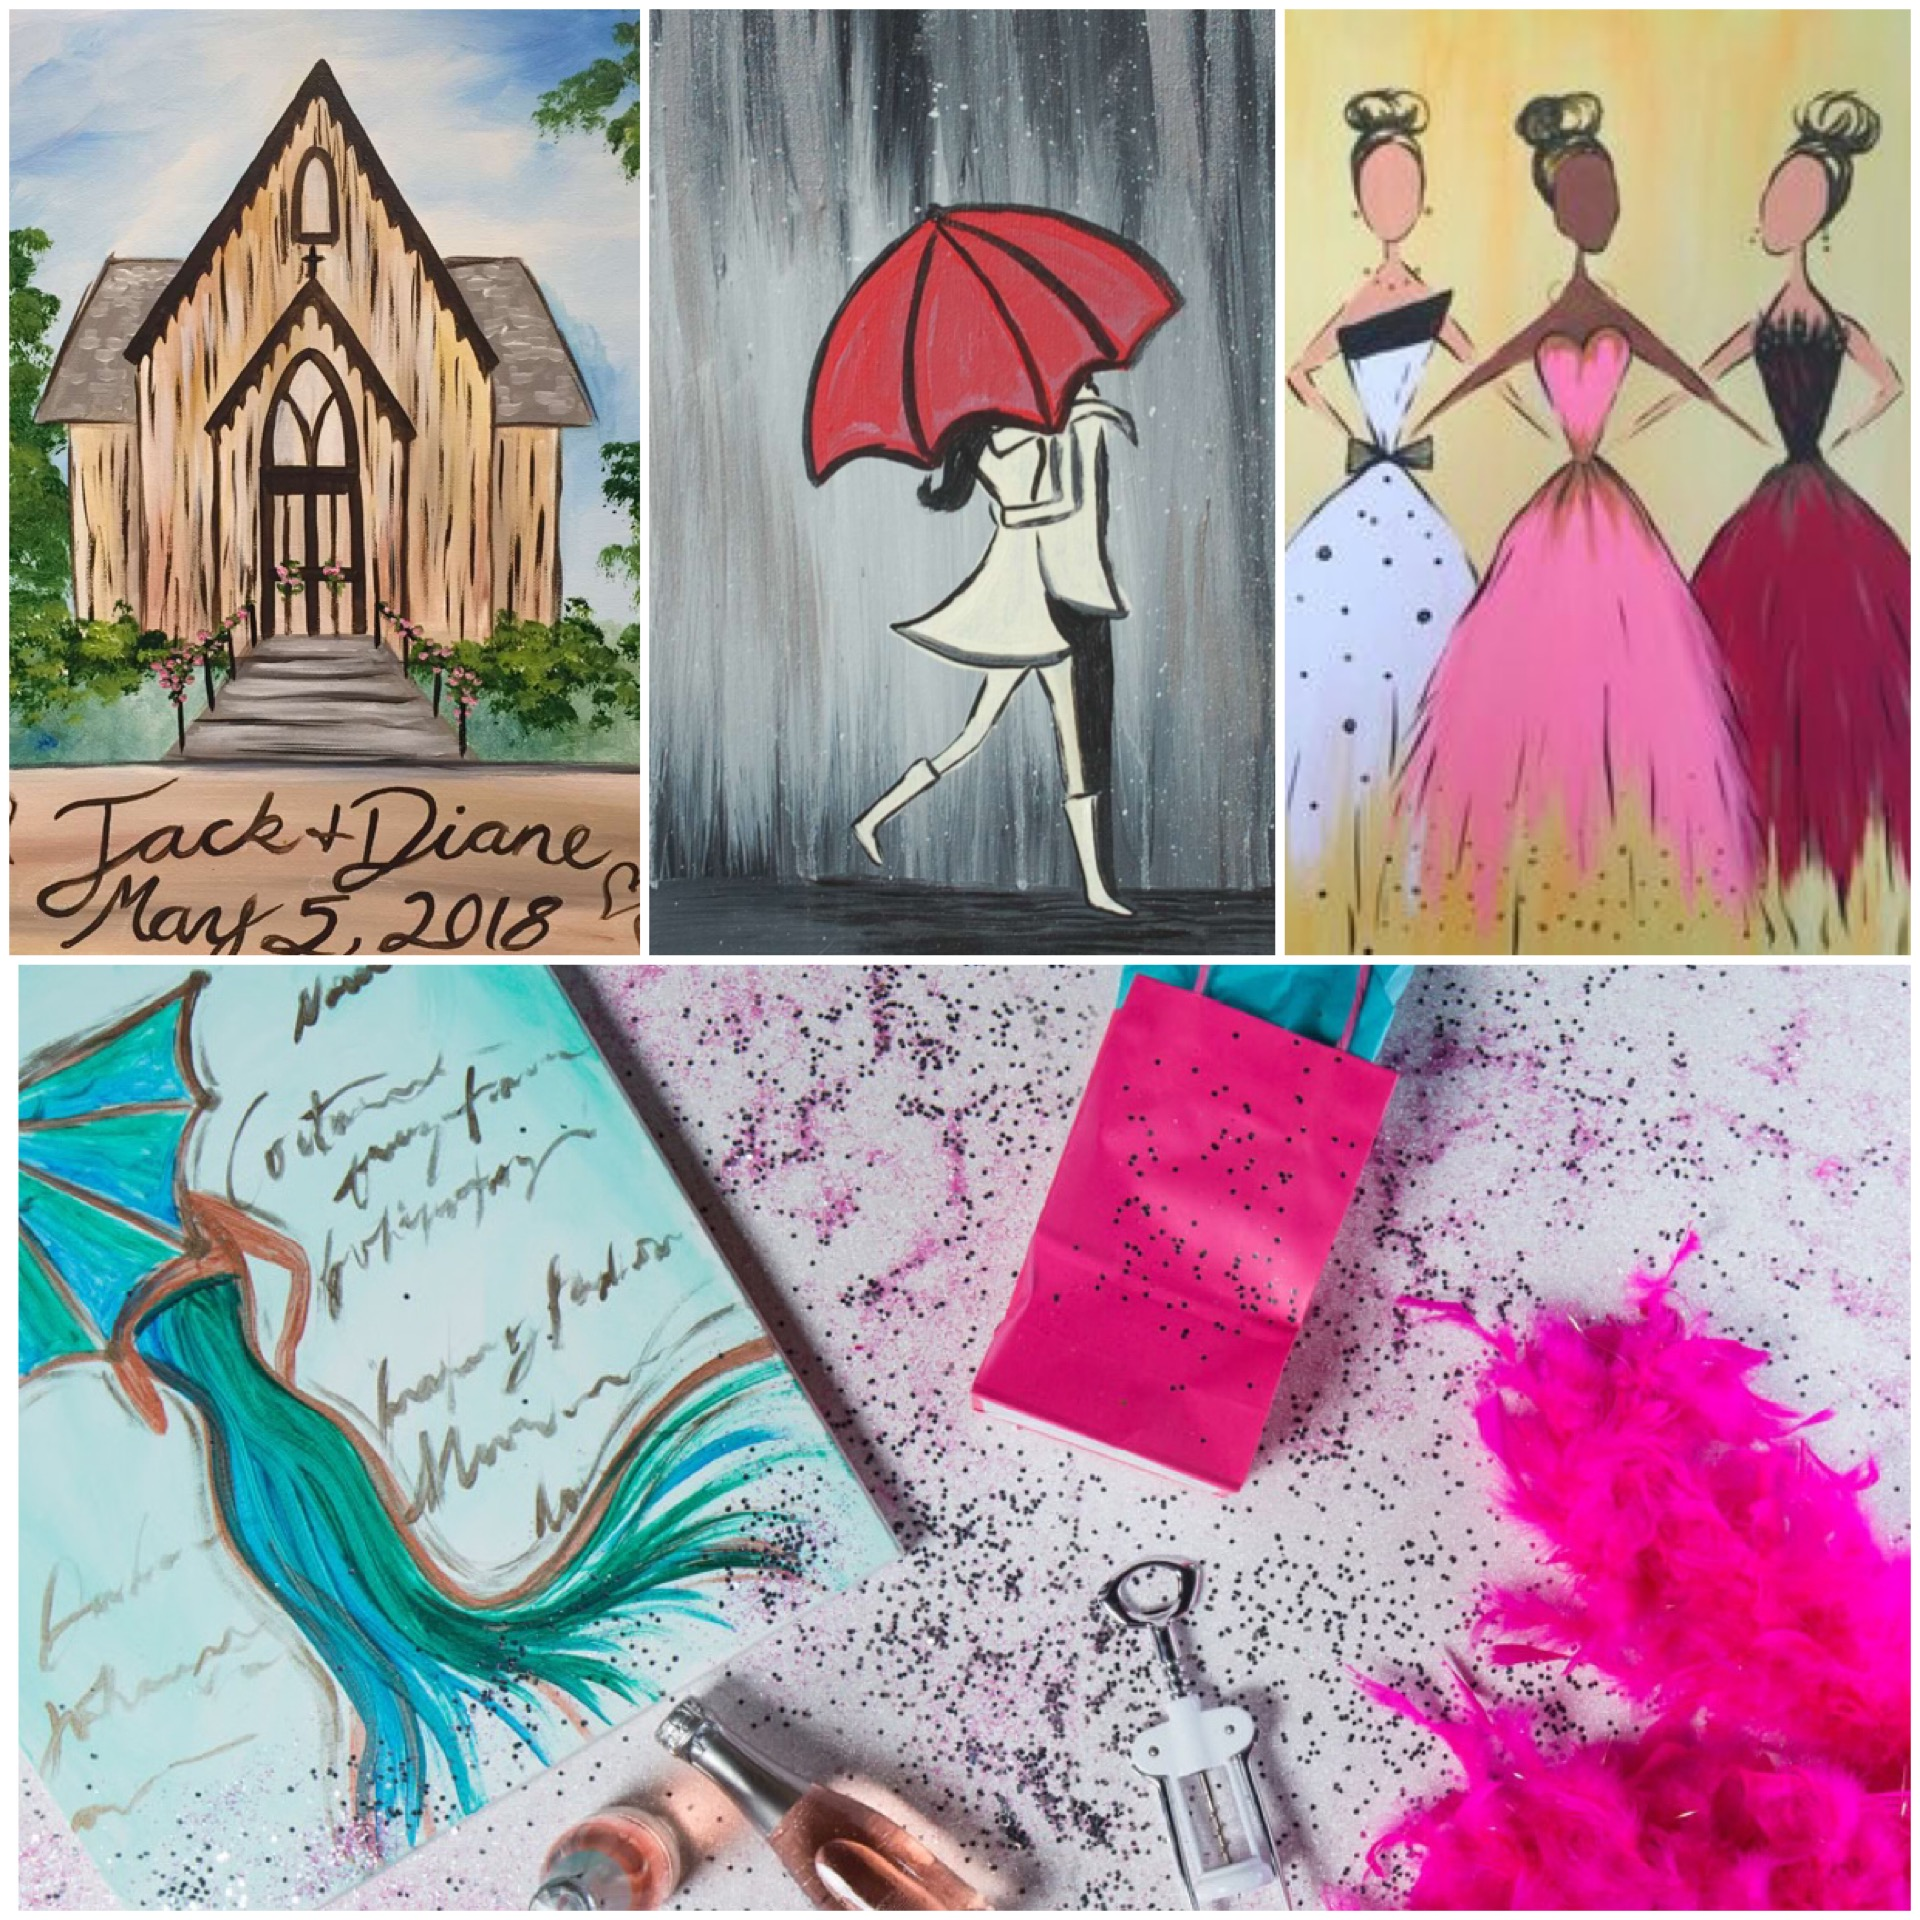 Plan Your Next Wedding Event With Pinot's Palette Brandon!